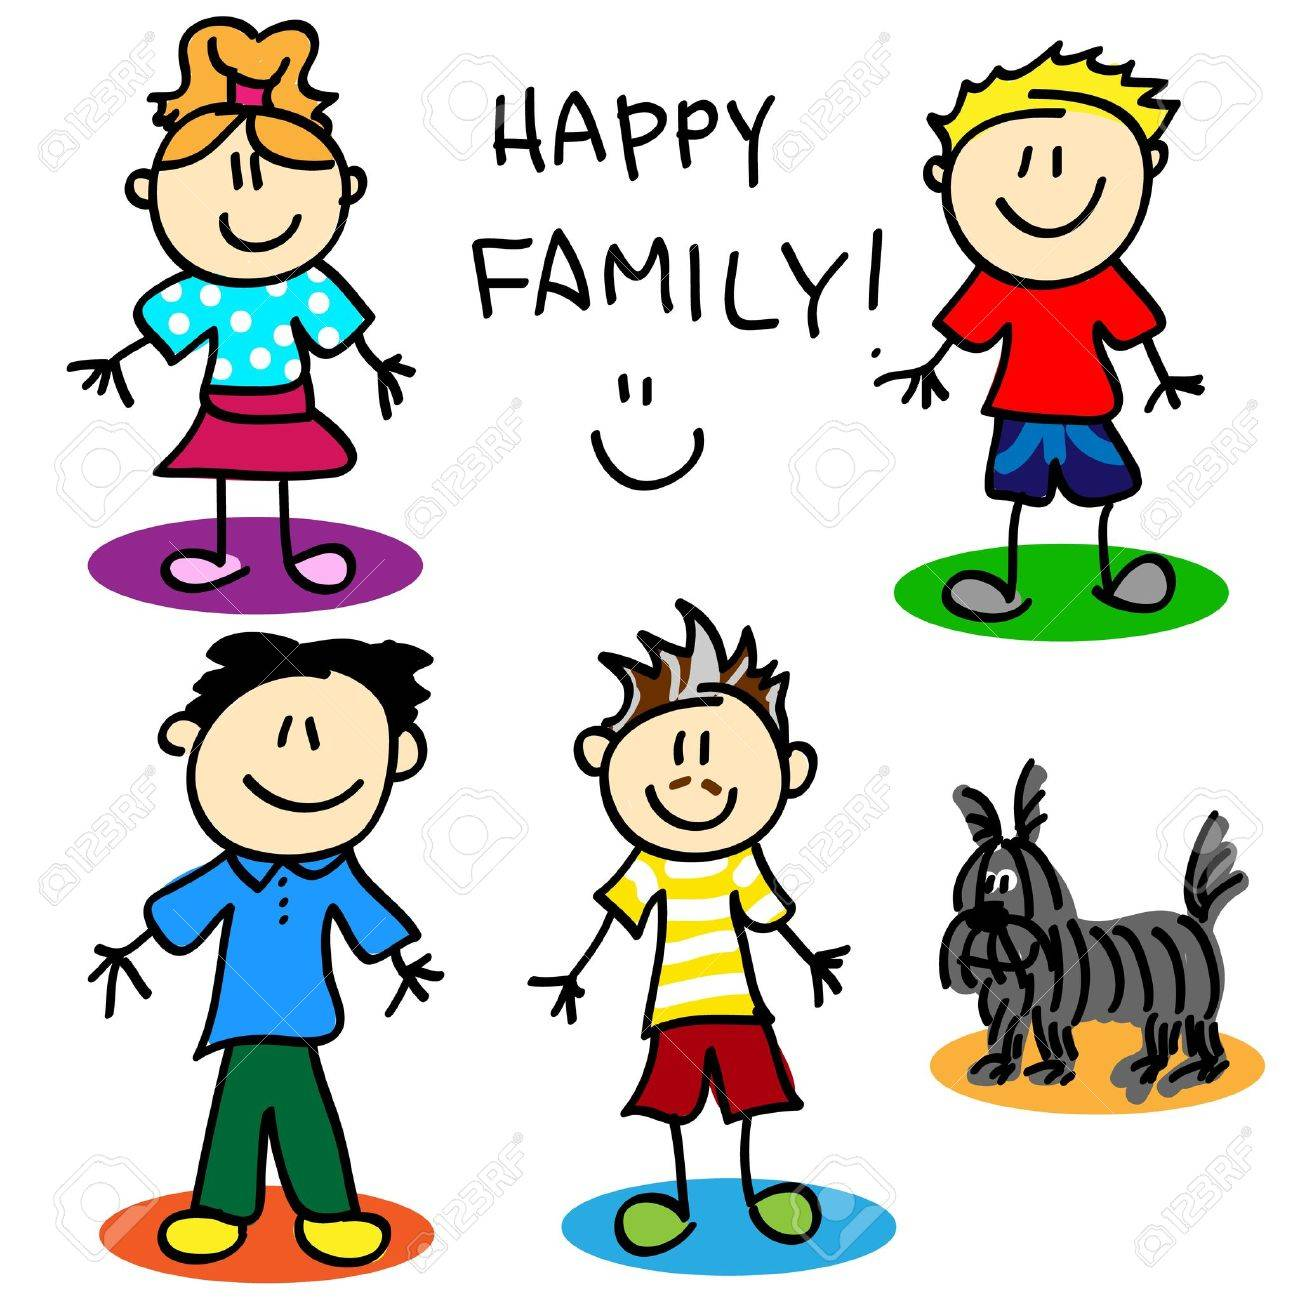 Fun stick figure cartoon gai family with, two fathers, little girl, little boy and dog. Stock Vector - 21934604